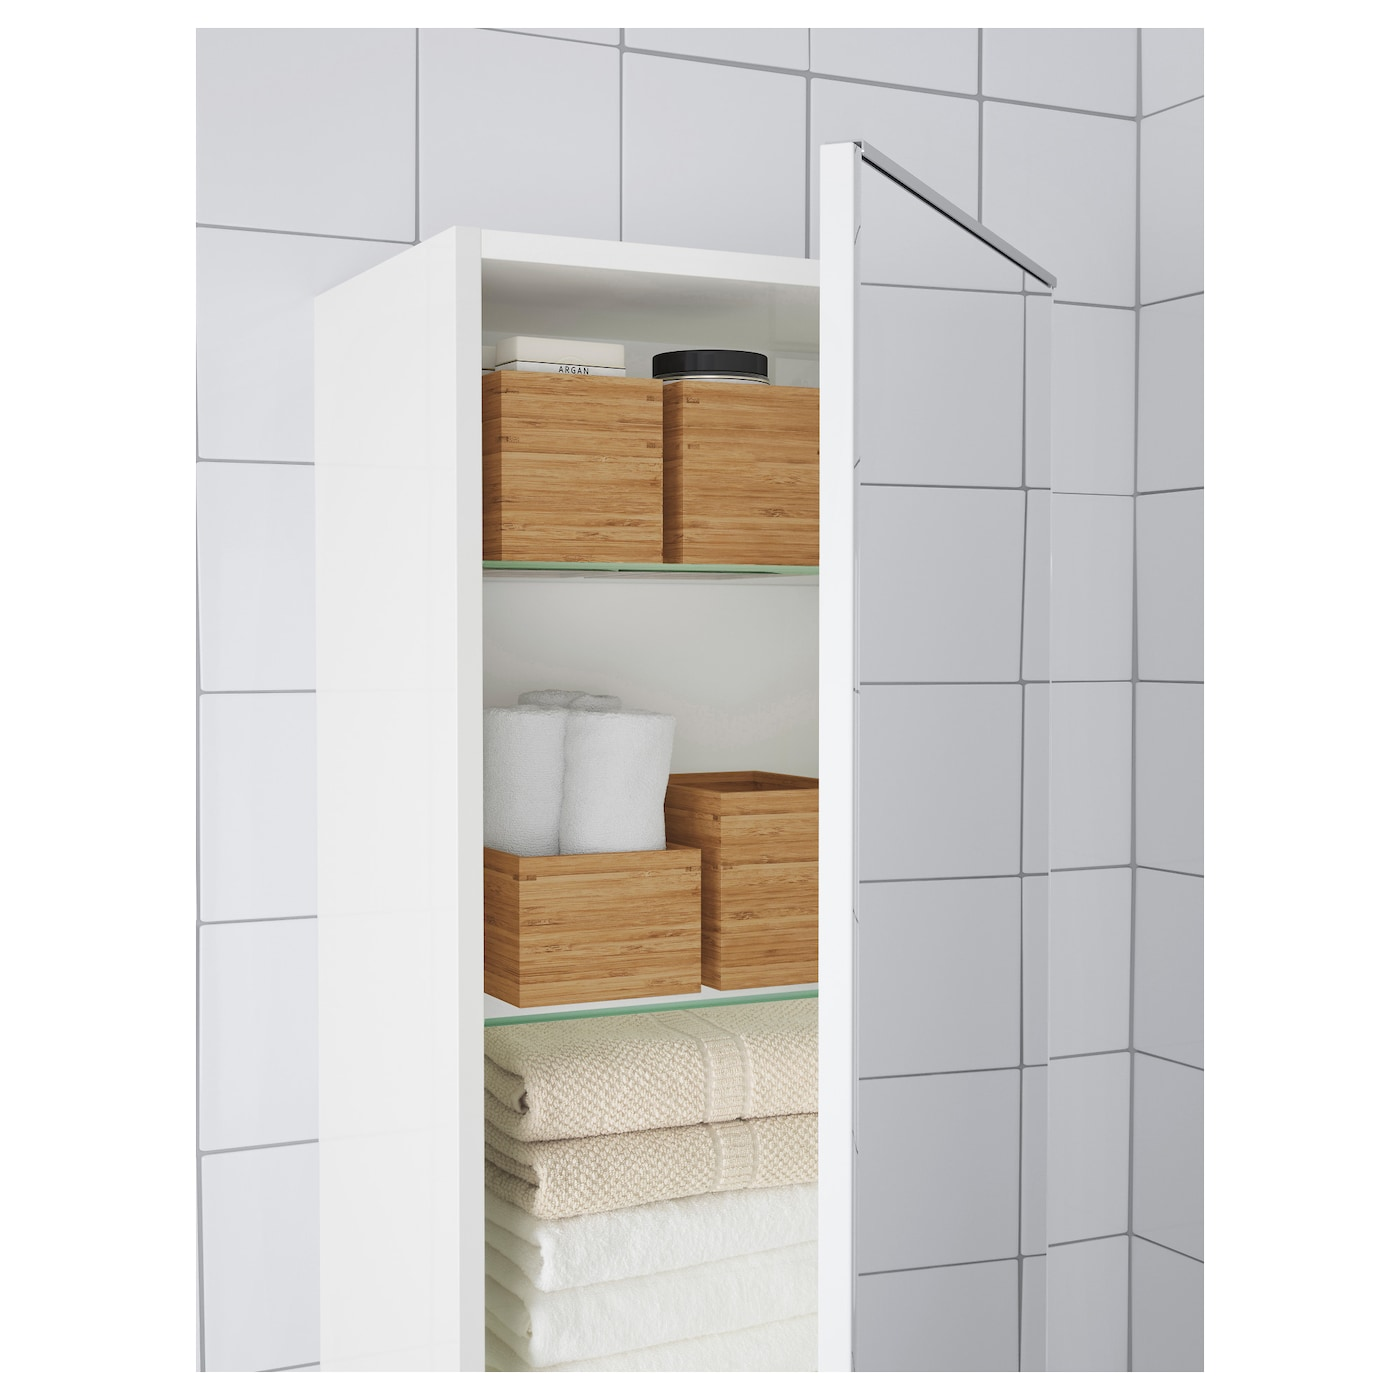 Dragan 2 piece bathroom set bamboo ikea - Bathroom accessories sets ikea ...